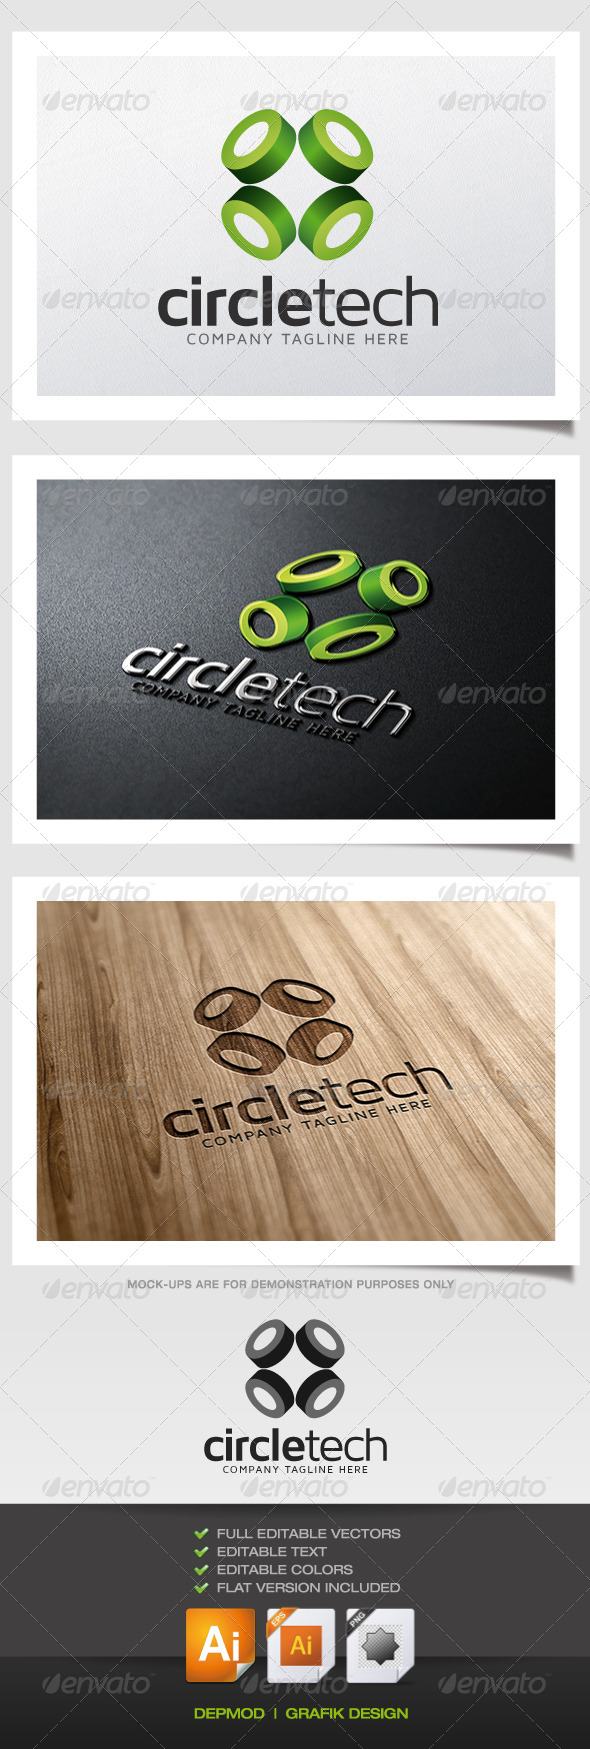 Circle Tech Logo - Abstract Logo Templates